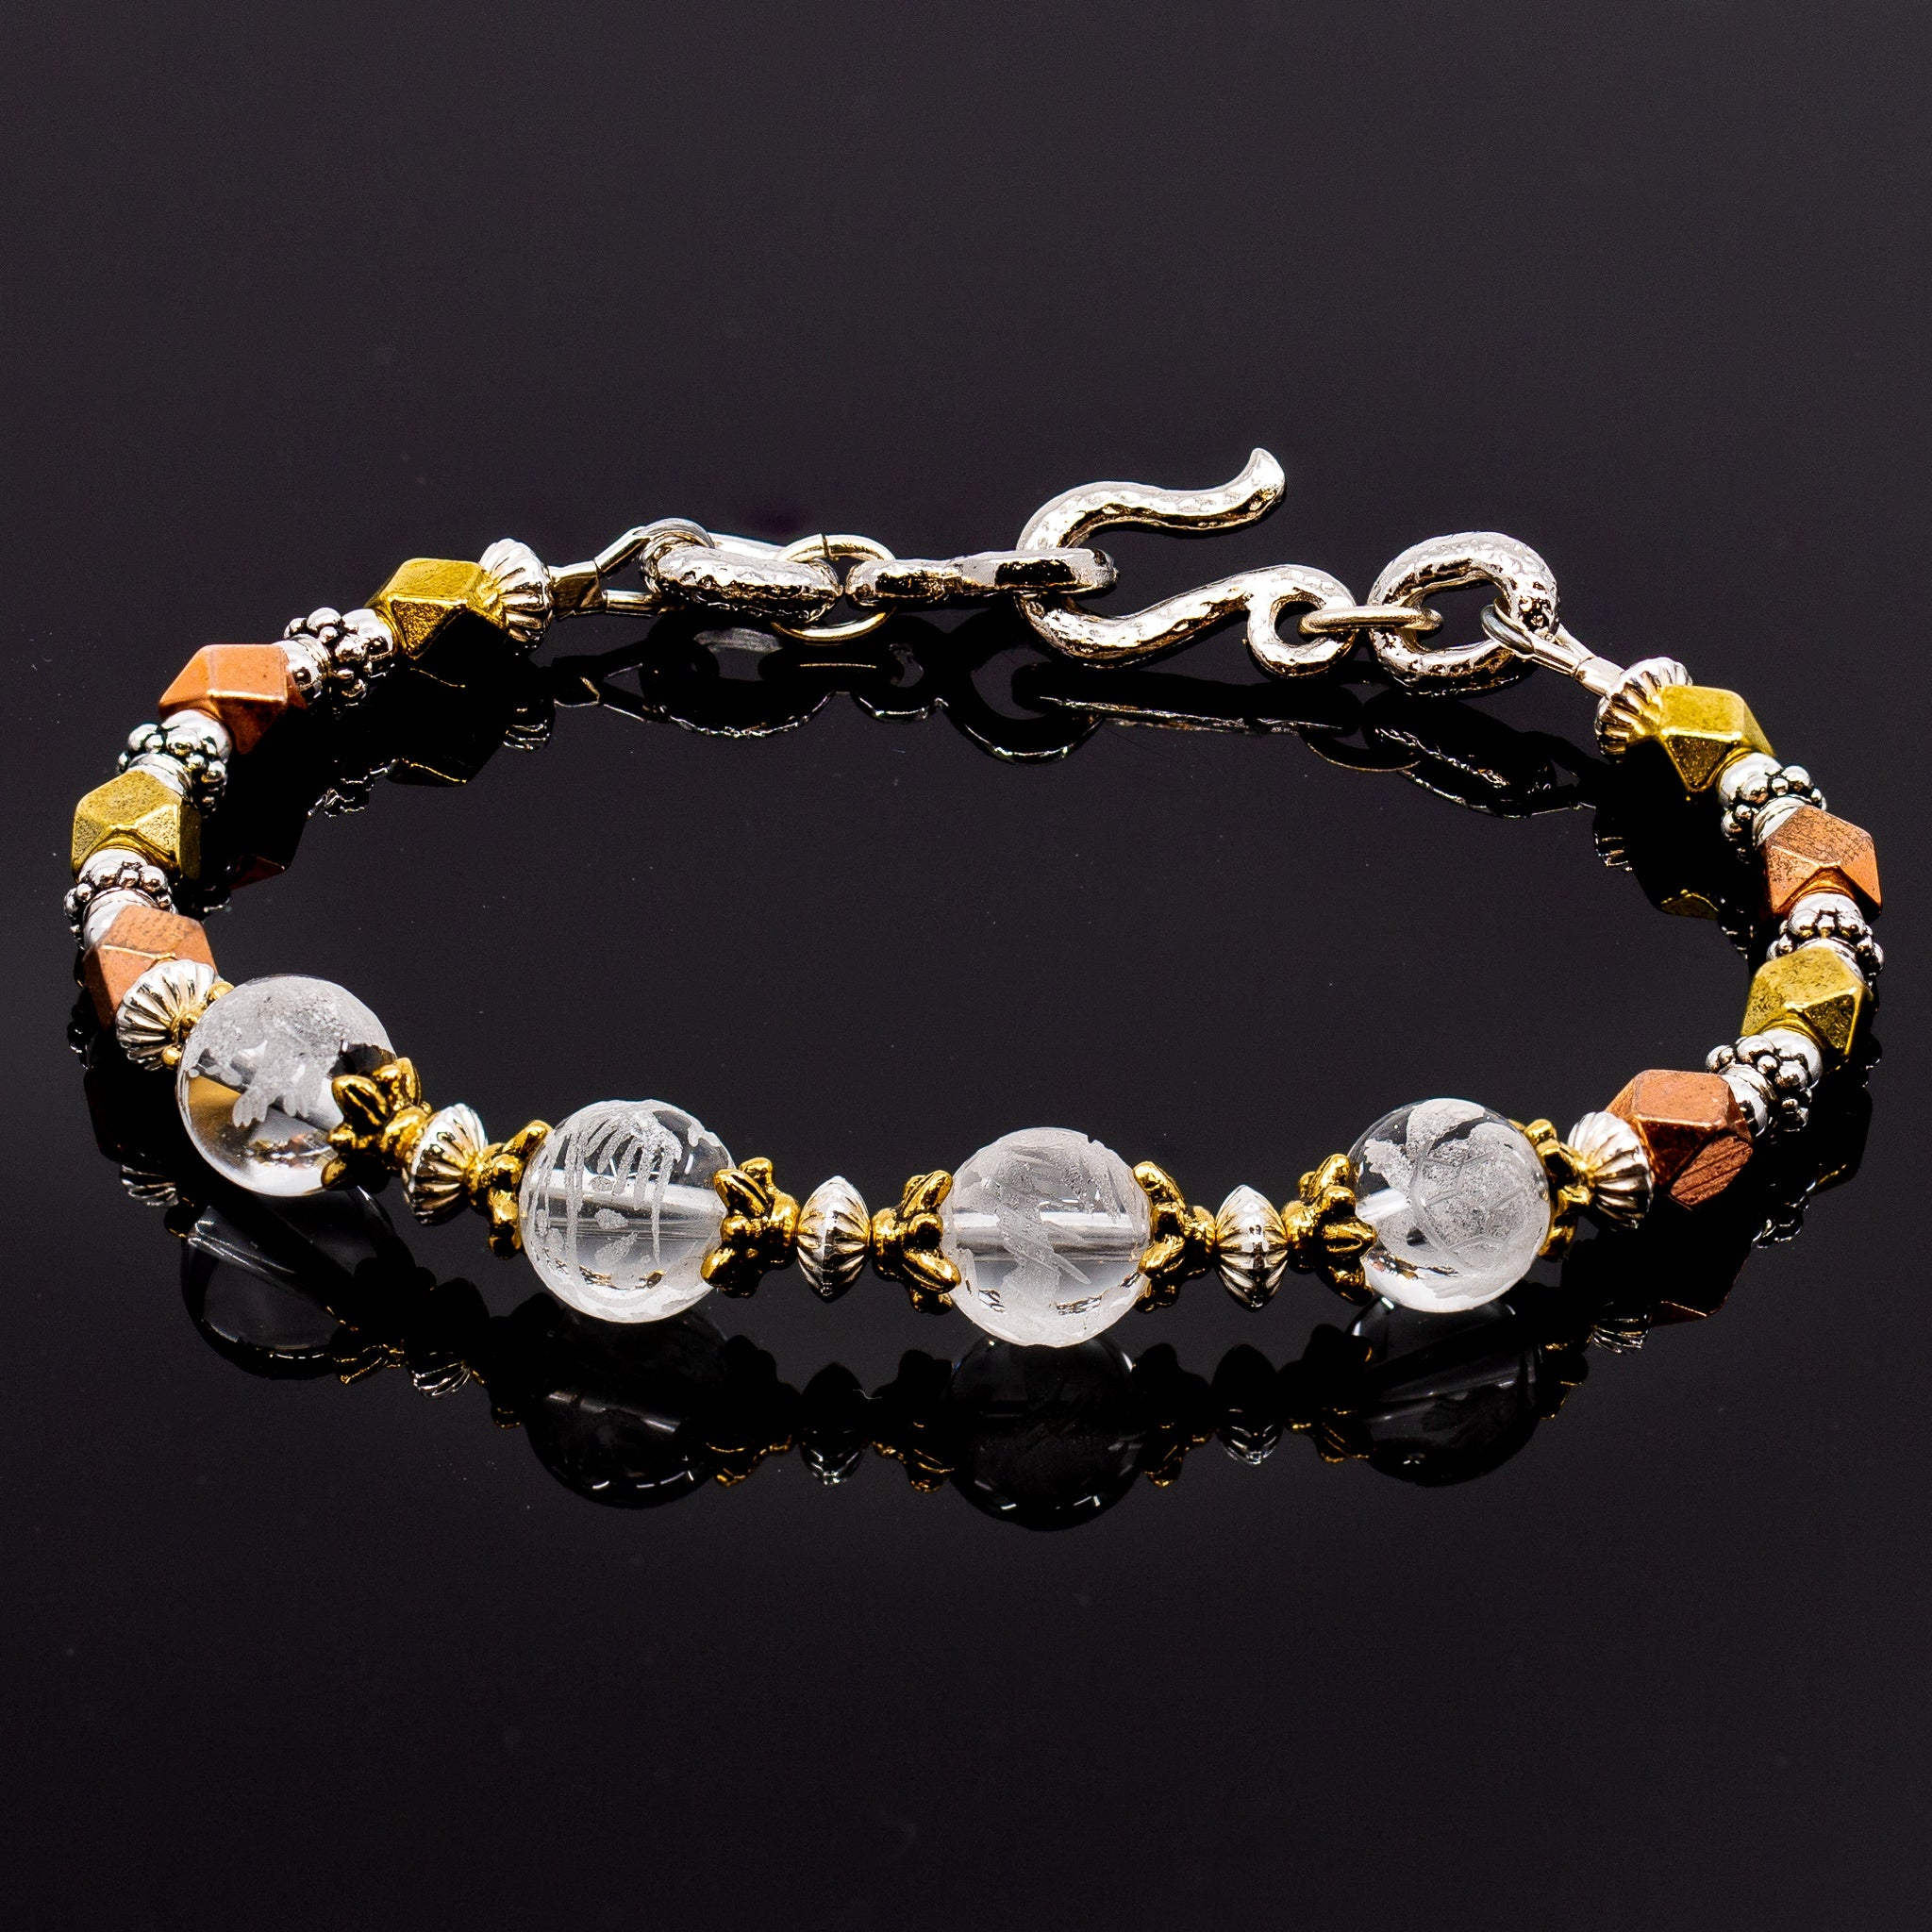 8mm Feng Shui Mixed Metal Bracelet Kit